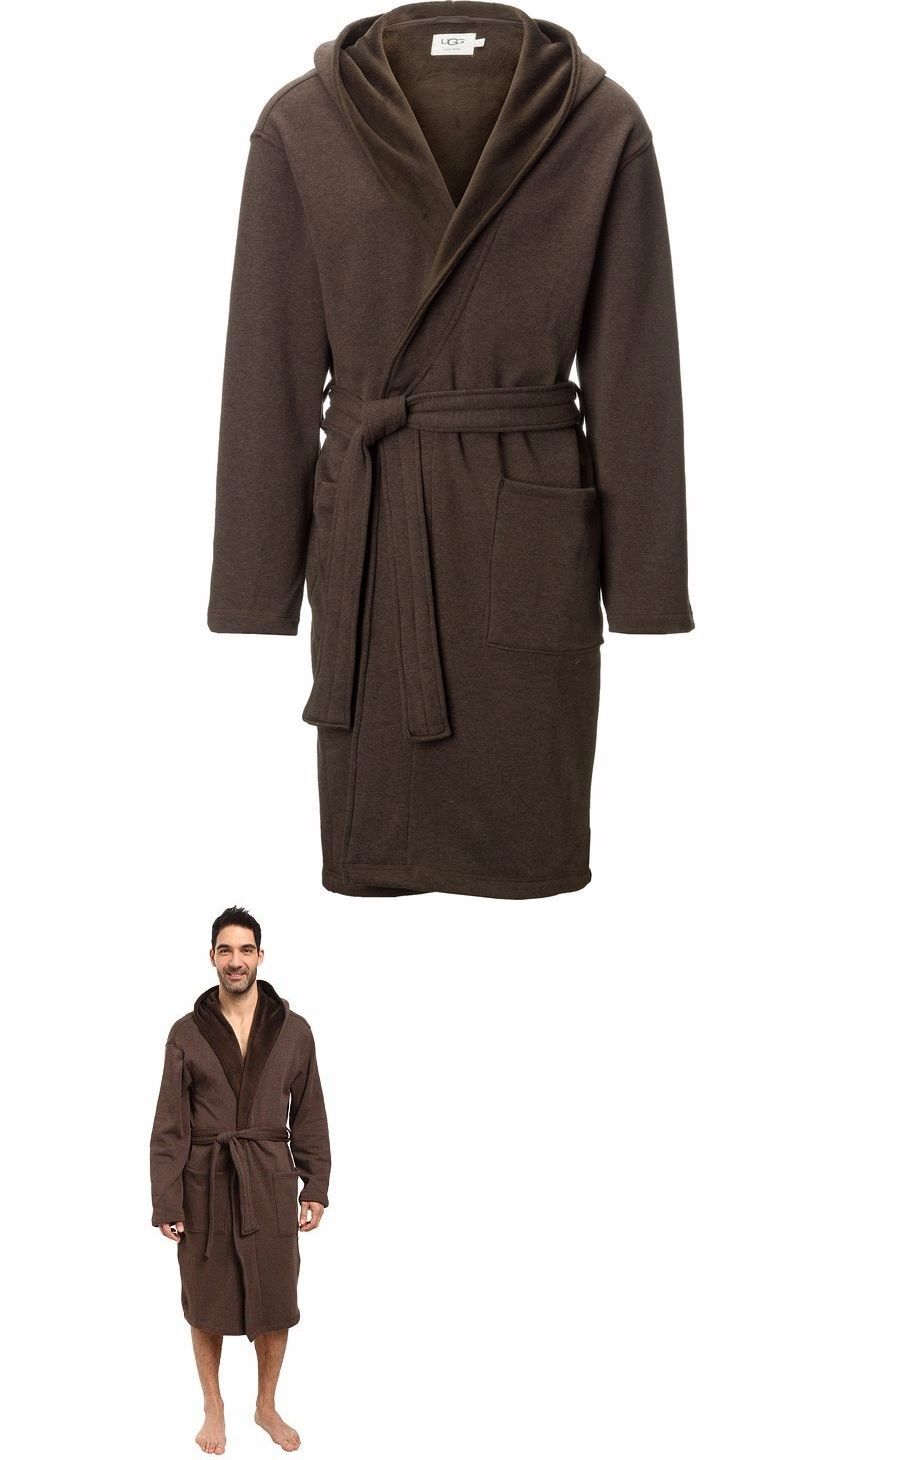 Sleepwear and Robes 11510  Men S Ugg Australia Brunswick Brown Stout Robe L  Xl Nwt -  BUY IT NOW ONLY   80 on eBay!  66d440025